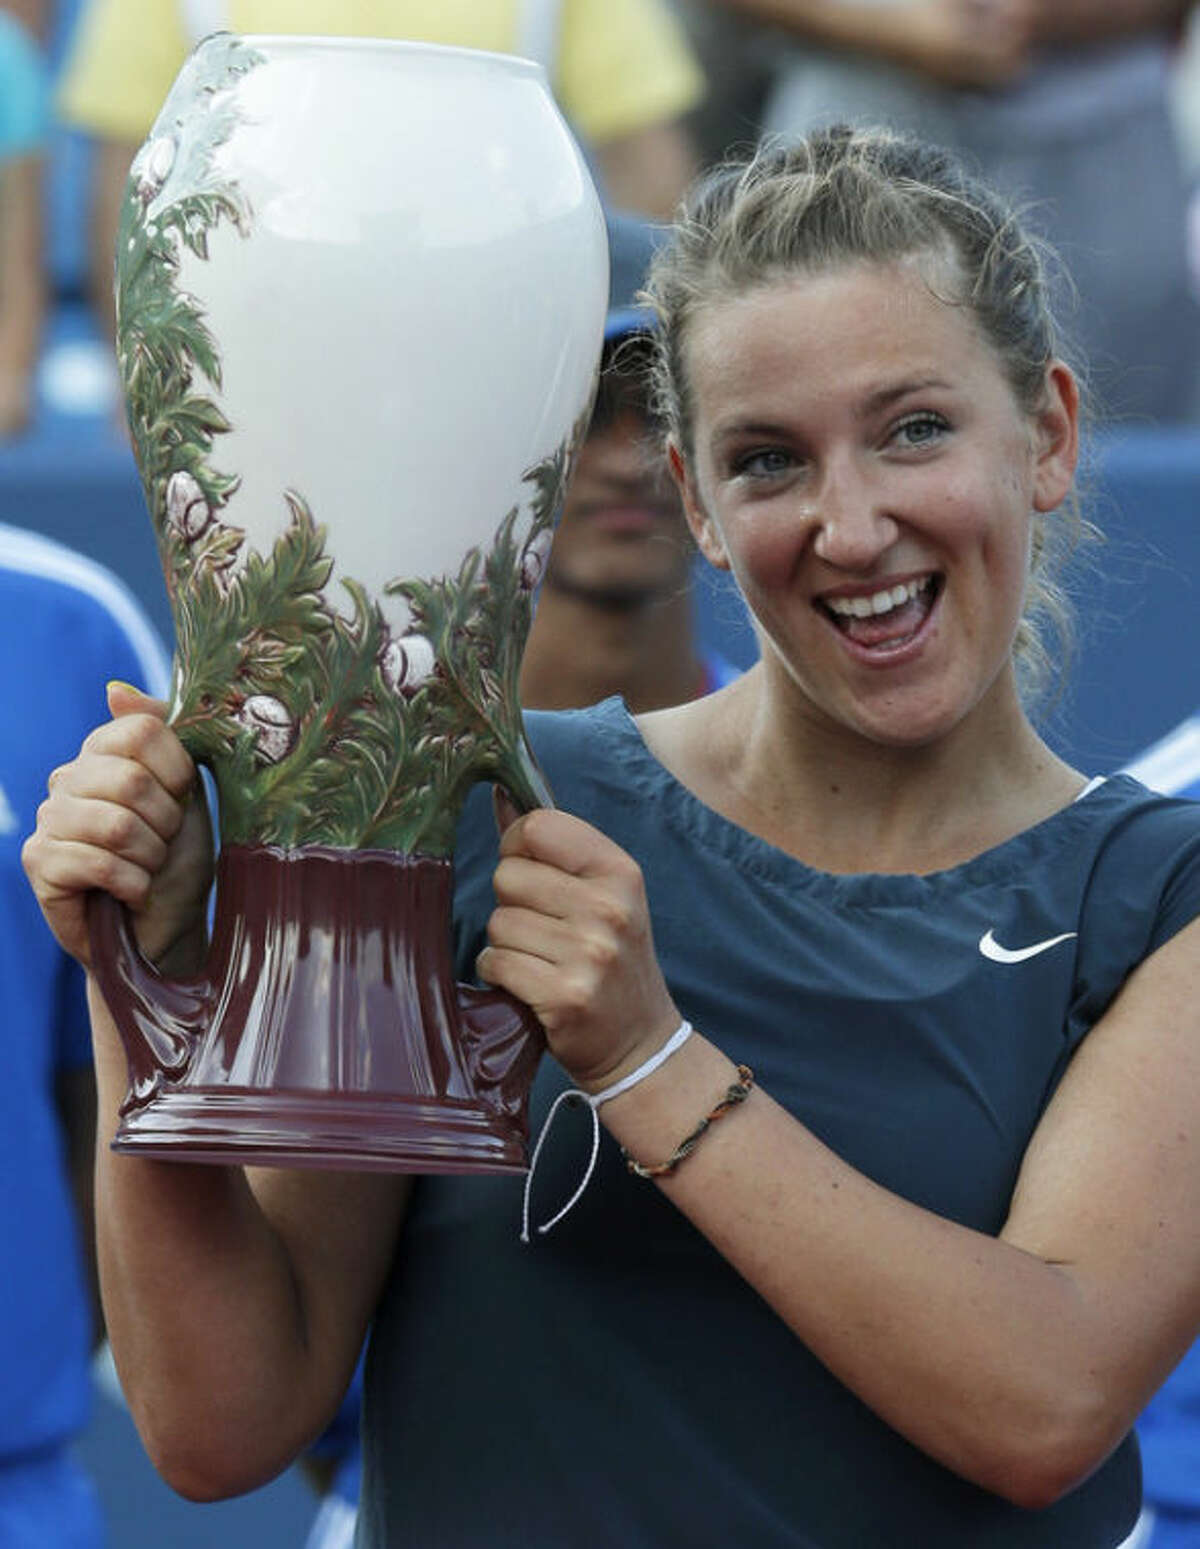 Victoria Azarenka, from Belarus, holds the championship trophy after she defeated Serena Williams, 2-6,6-2, 7-6 (6) to win the Western & Southern Open tennis tournament, Sunday, Aug. 18, 2013, in Mason, Ohio. (AP Photo/Al Behrman)